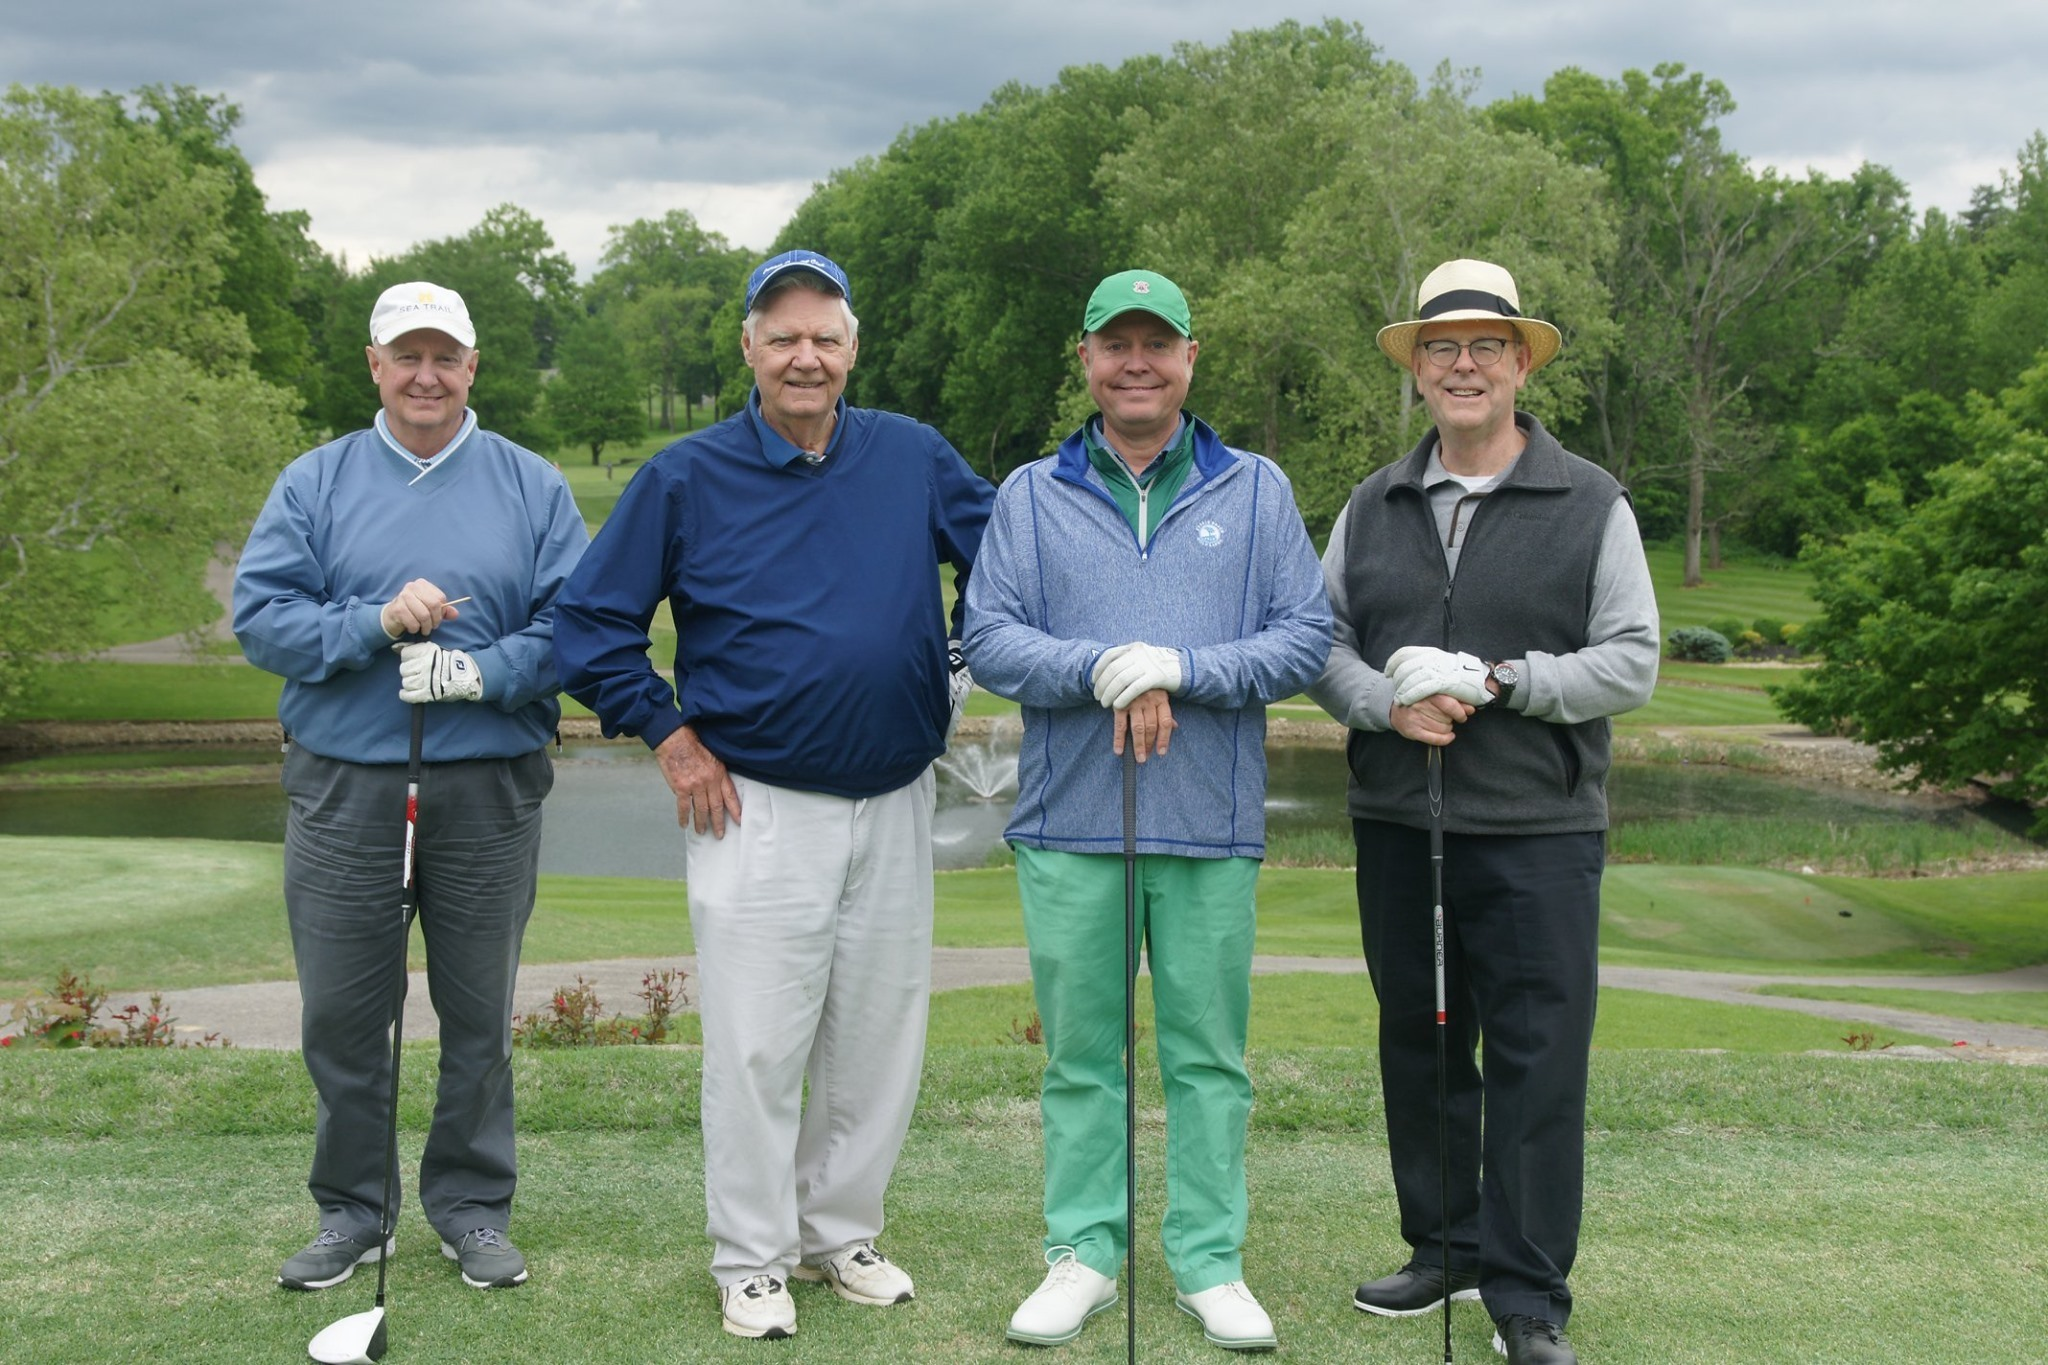 St. Matthews Area Ministries Golf Classic gallery image #9